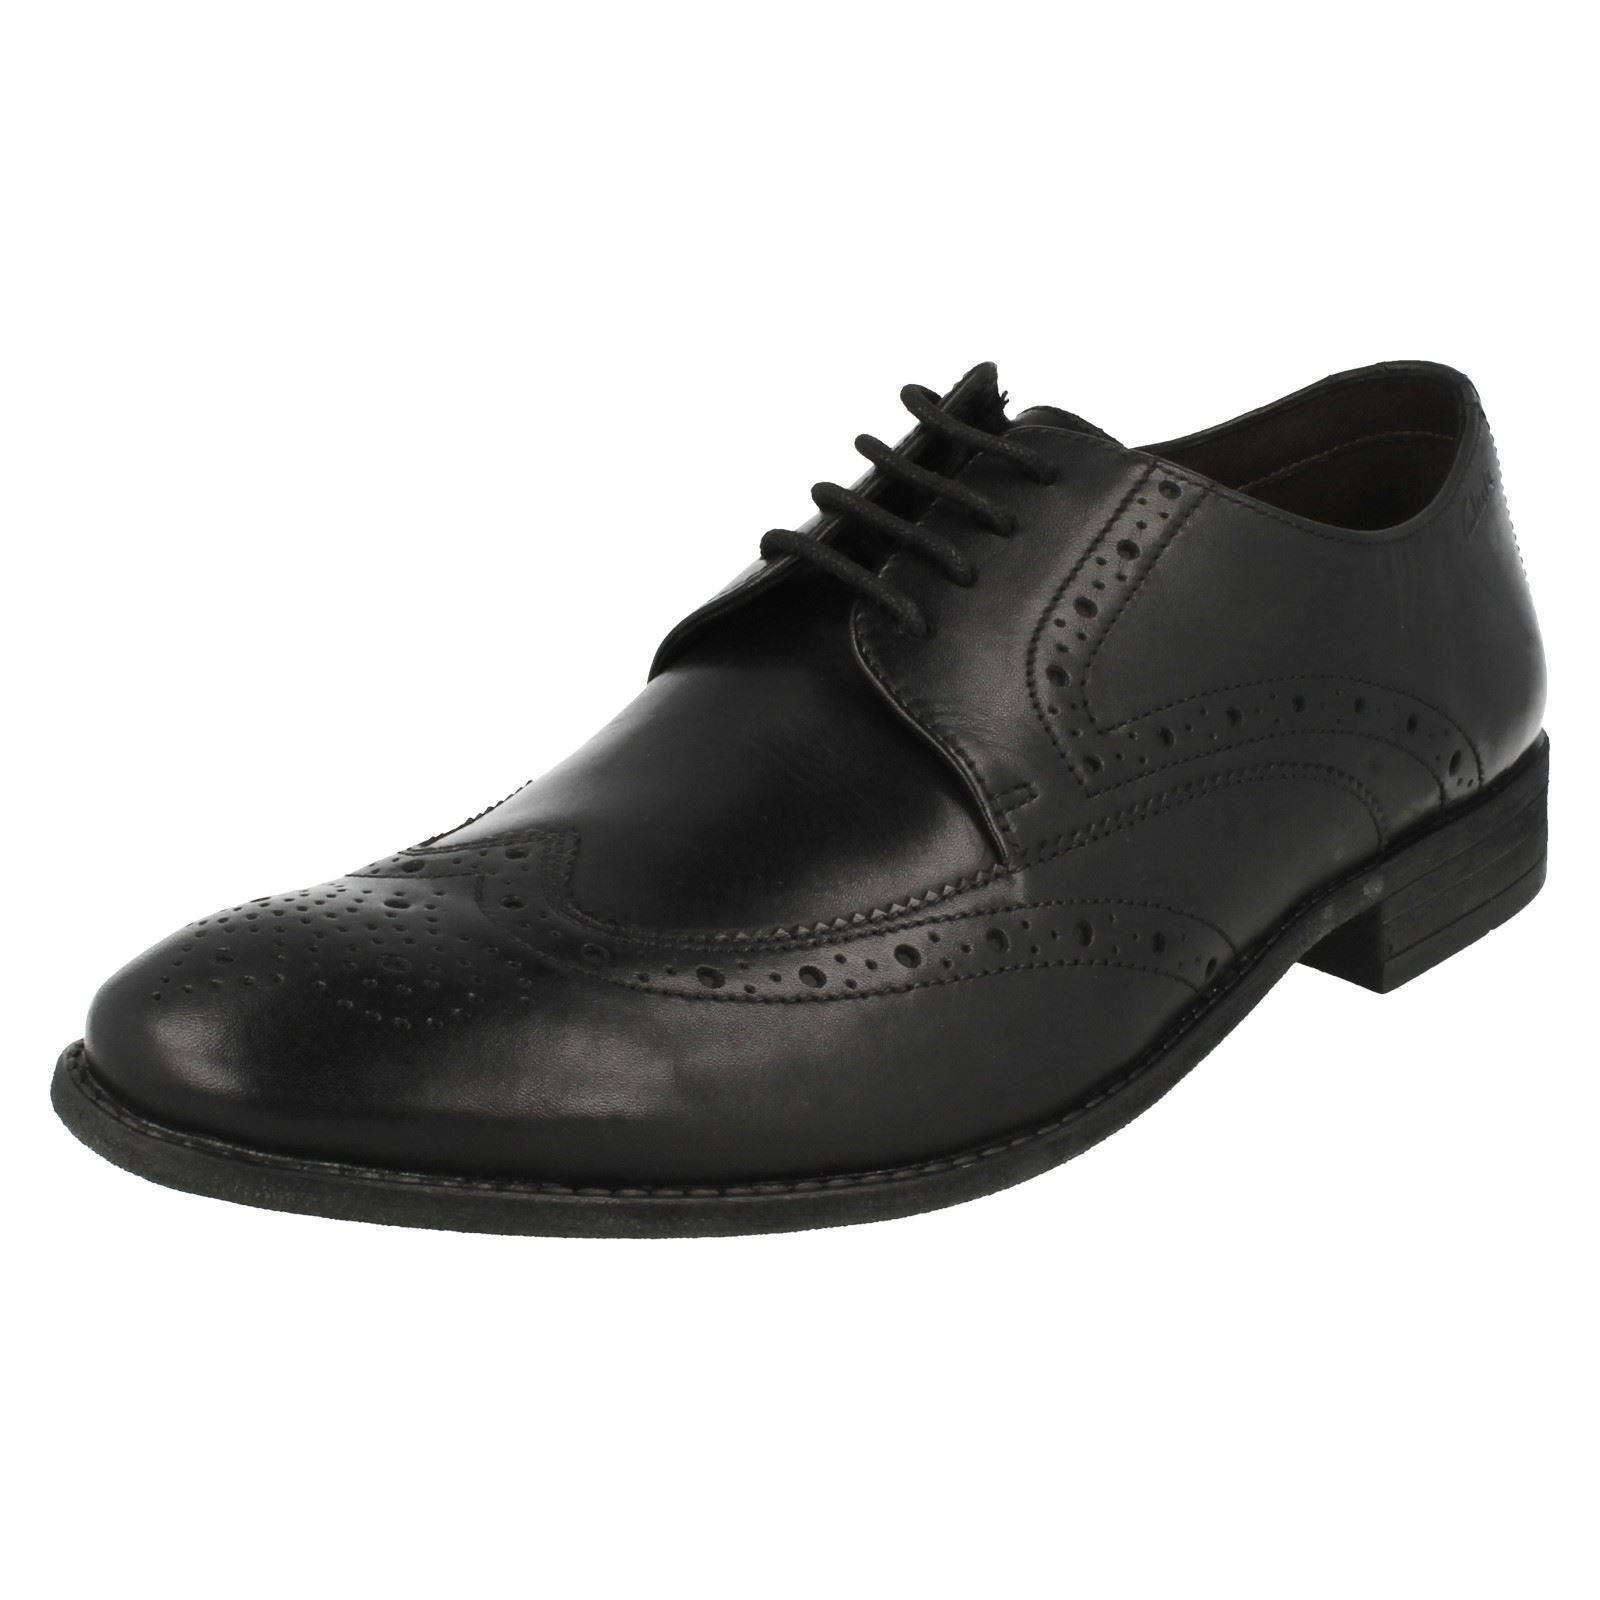 Brogues Herren Clarks Smart Brogues  'Chart Limit' ea1912